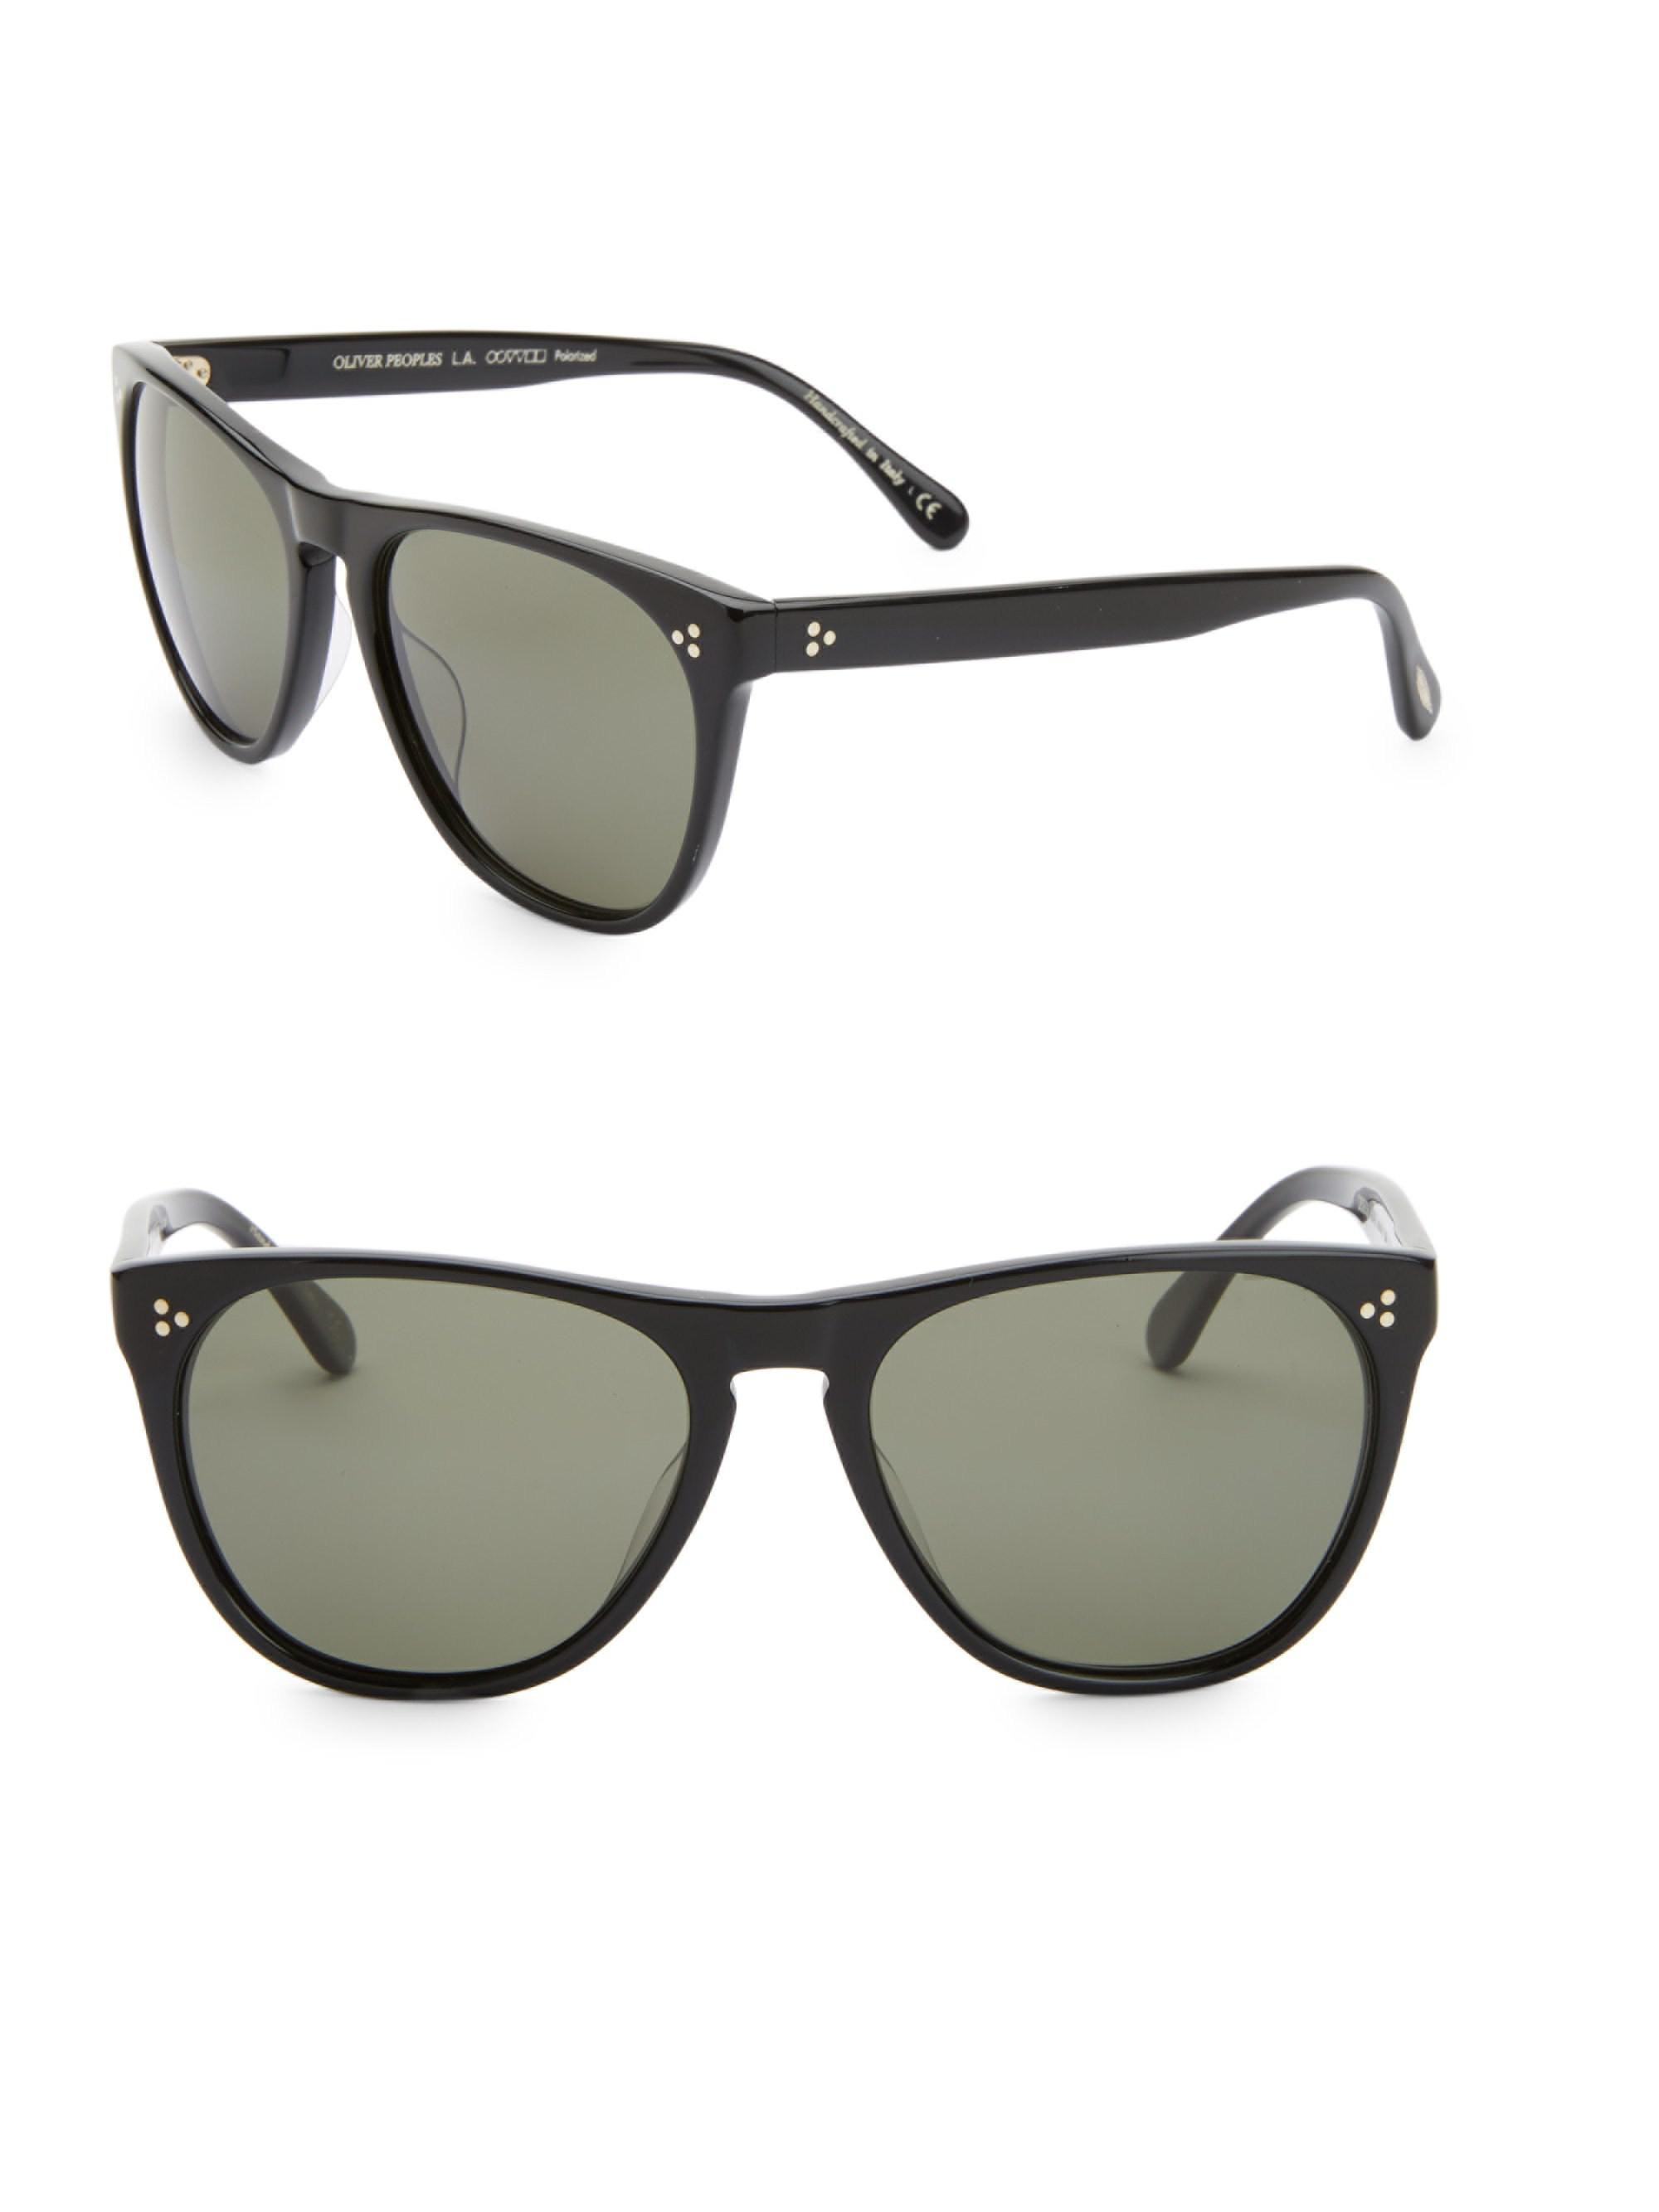 289dd8f6391 Lyst - Oliver Peoples Daddy 58mm Square Sunglasses in Black for Men